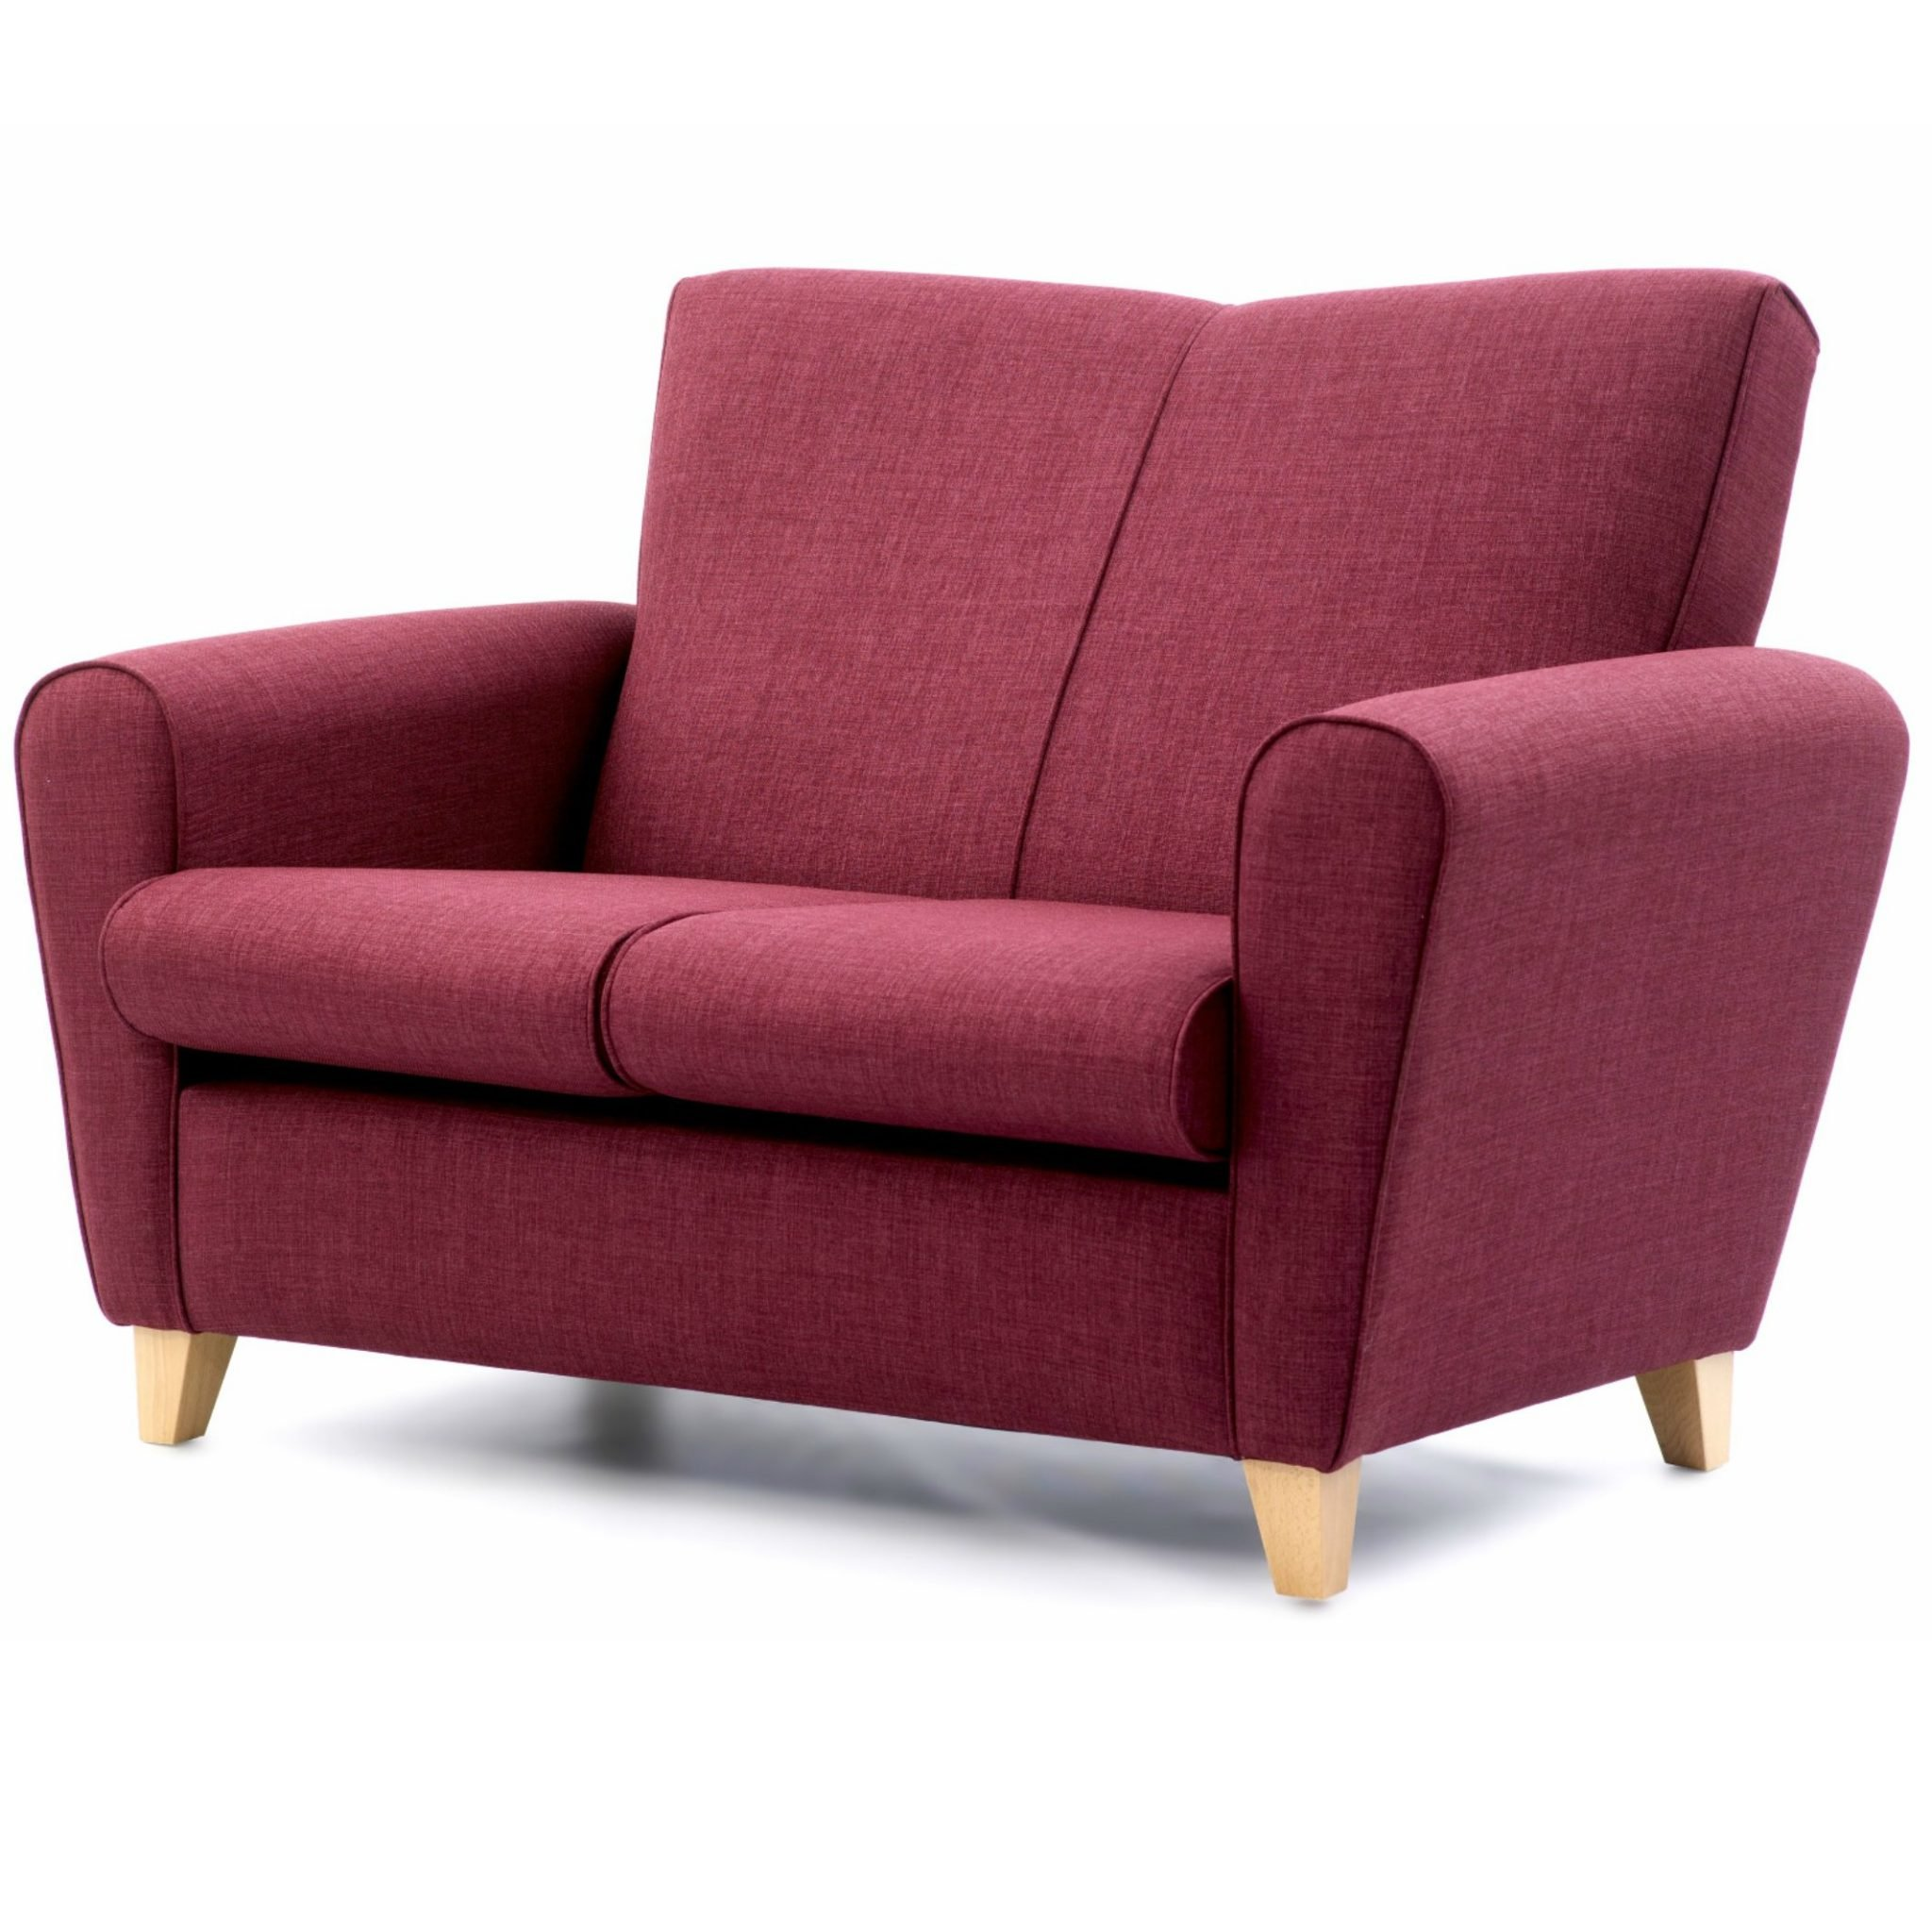 Savena 2 Seater Sofa